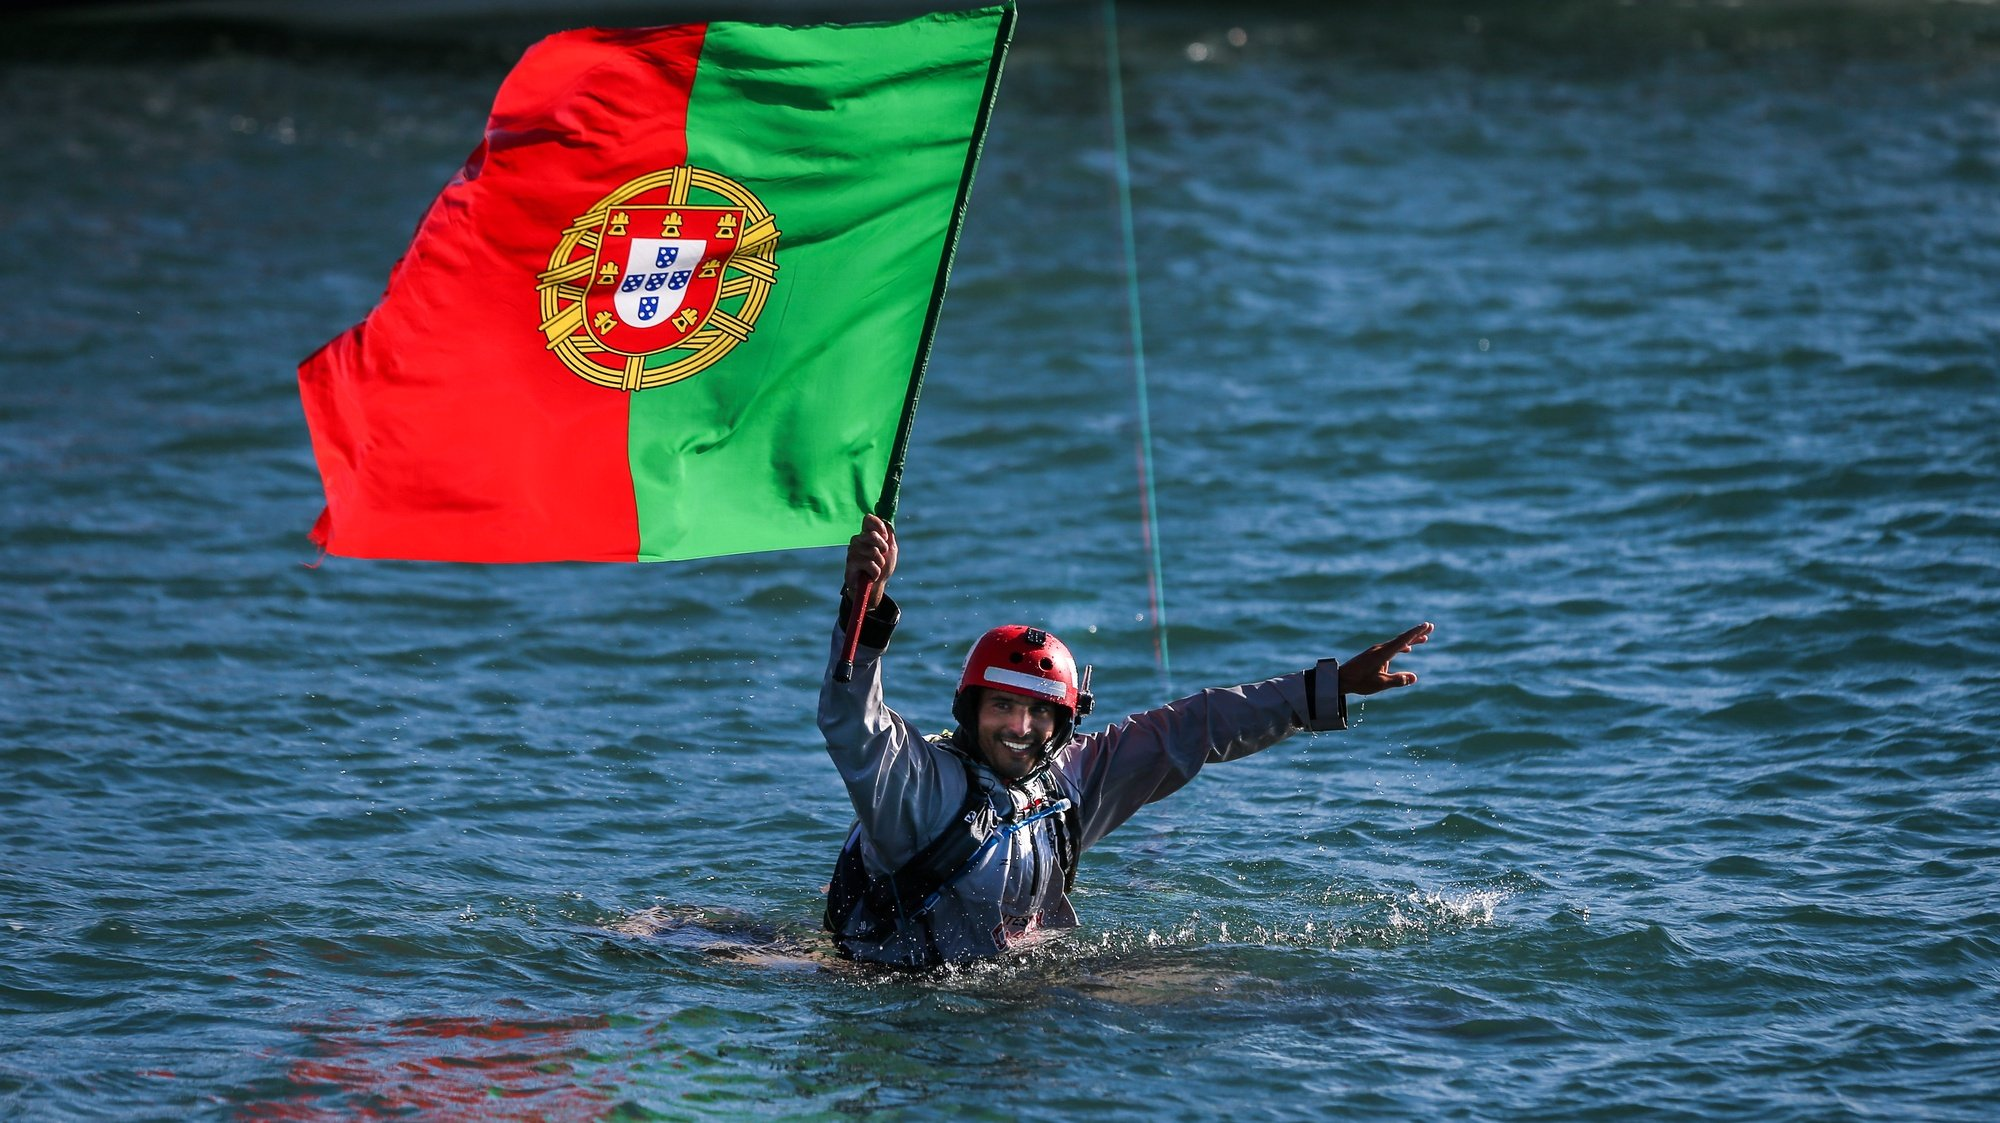 Portuguese kitesurfer, Francisco Lufinha, holds the Portugal flag as he arrives to Oeiras harbour after conquering a new kitesurf world record of the longest kitesurf trip with his partner the German Anke Brandt (not on the picture) between Azores Islands and continental Portugal, Oeiras, Portugal, 13 September 2017. MARIO CRUZ/LUSA